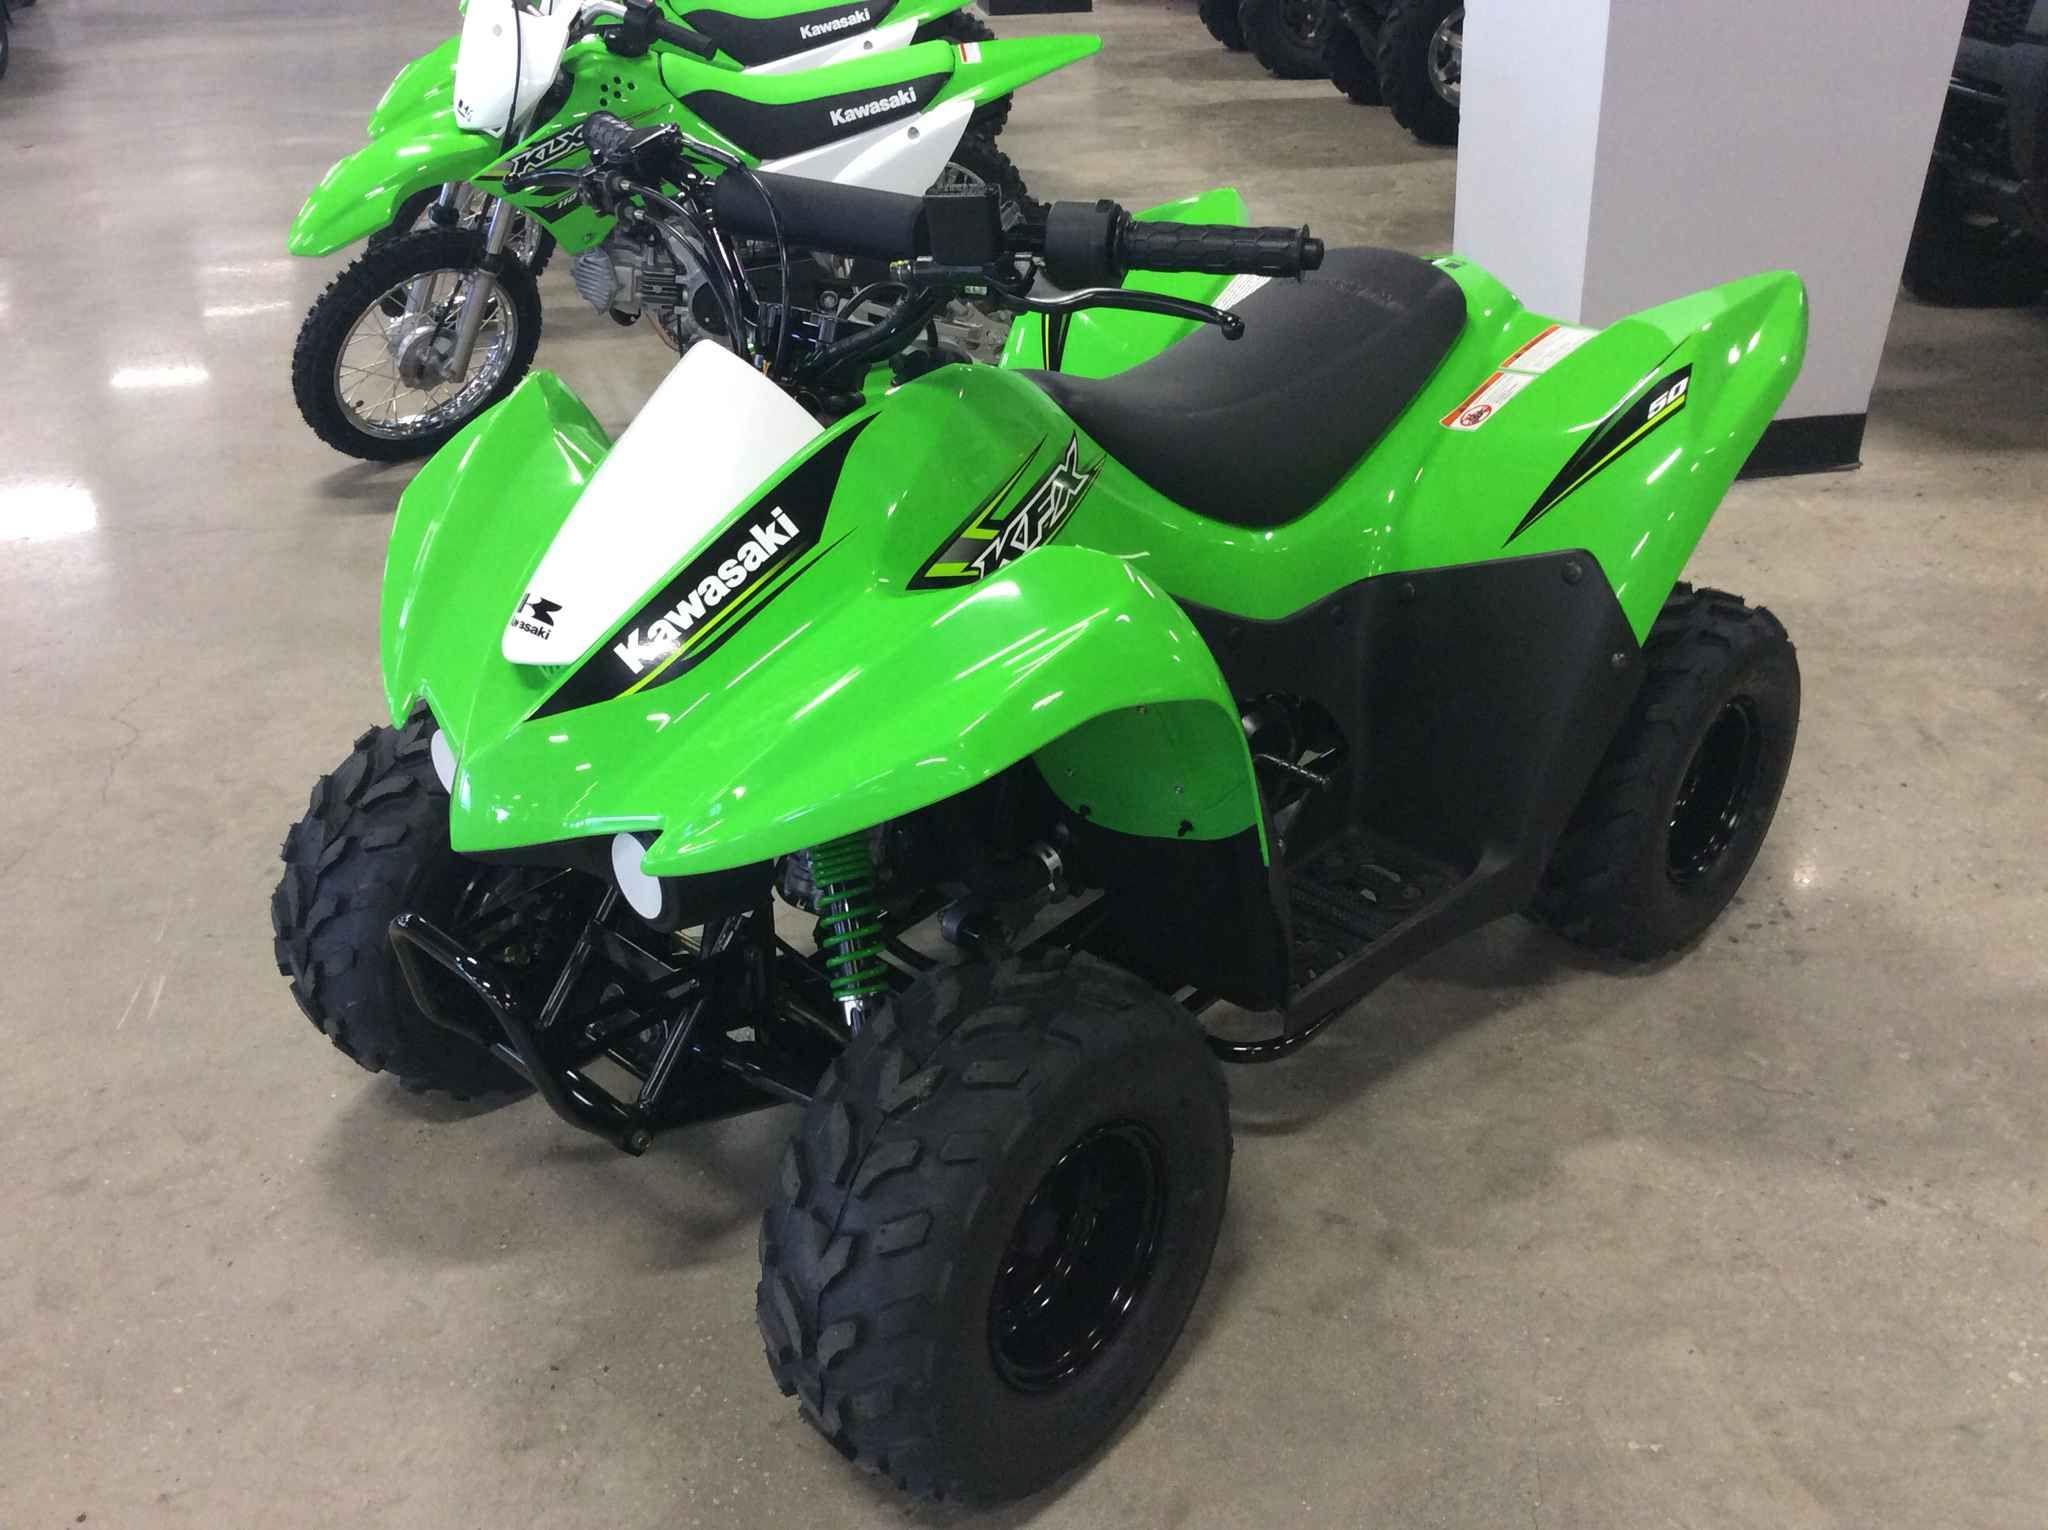 new 2017 kawasaki kfx 50 atvs for sale in new jersey. 2017